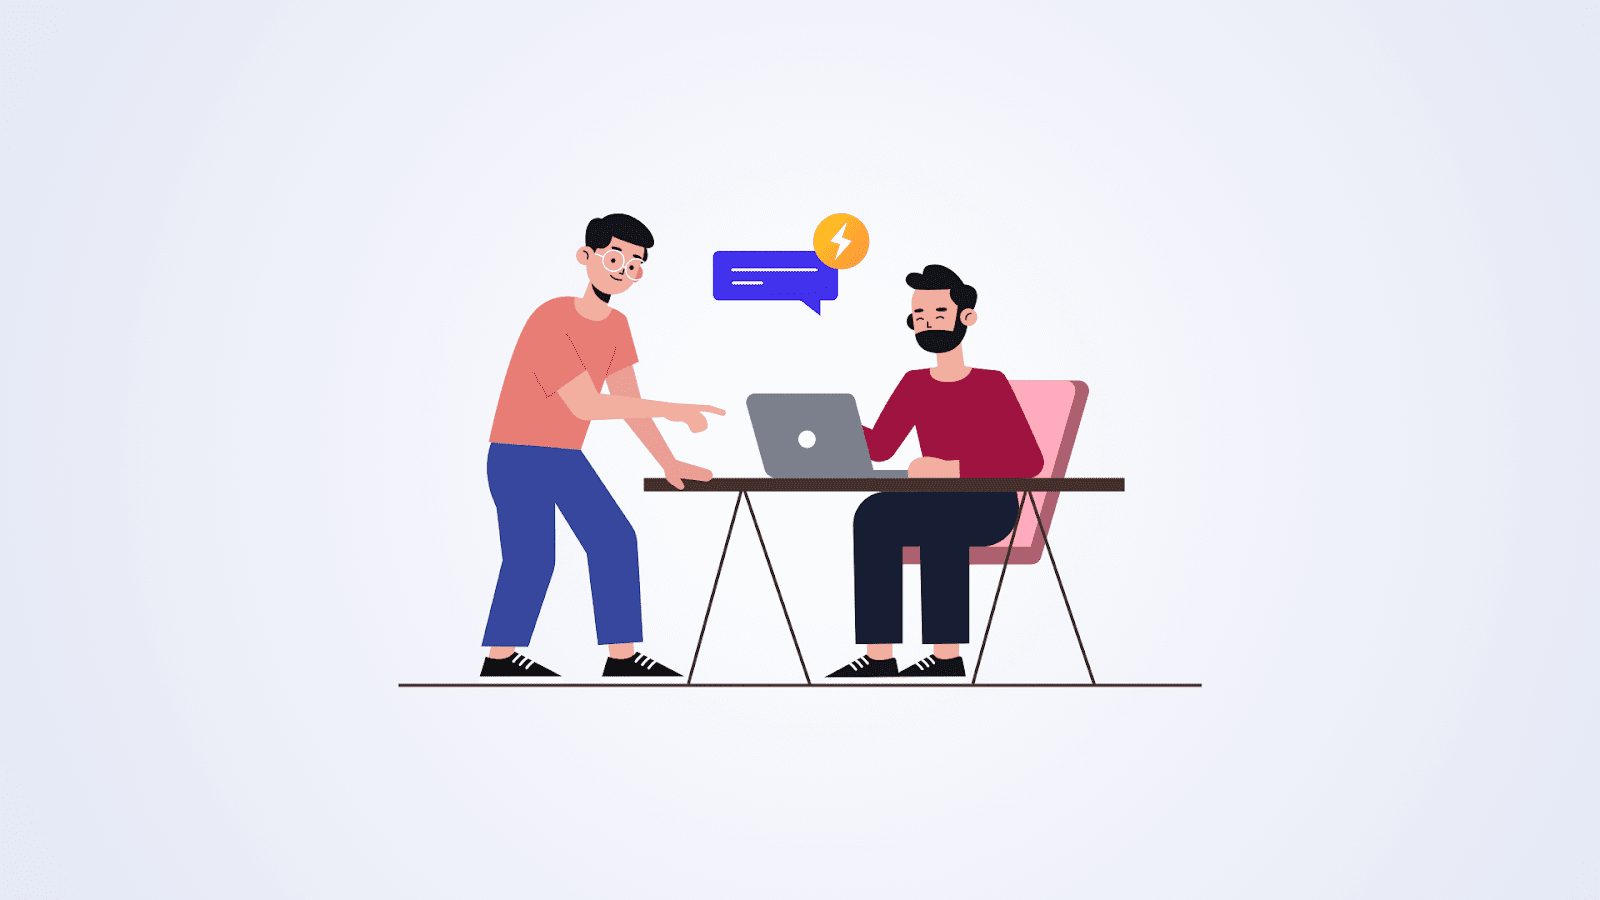 5 Strategies to Ensure Quick Response Times by Your Customer Support Team |  Customer Service Blog from HappyFox – Improve Customer Service & Experience